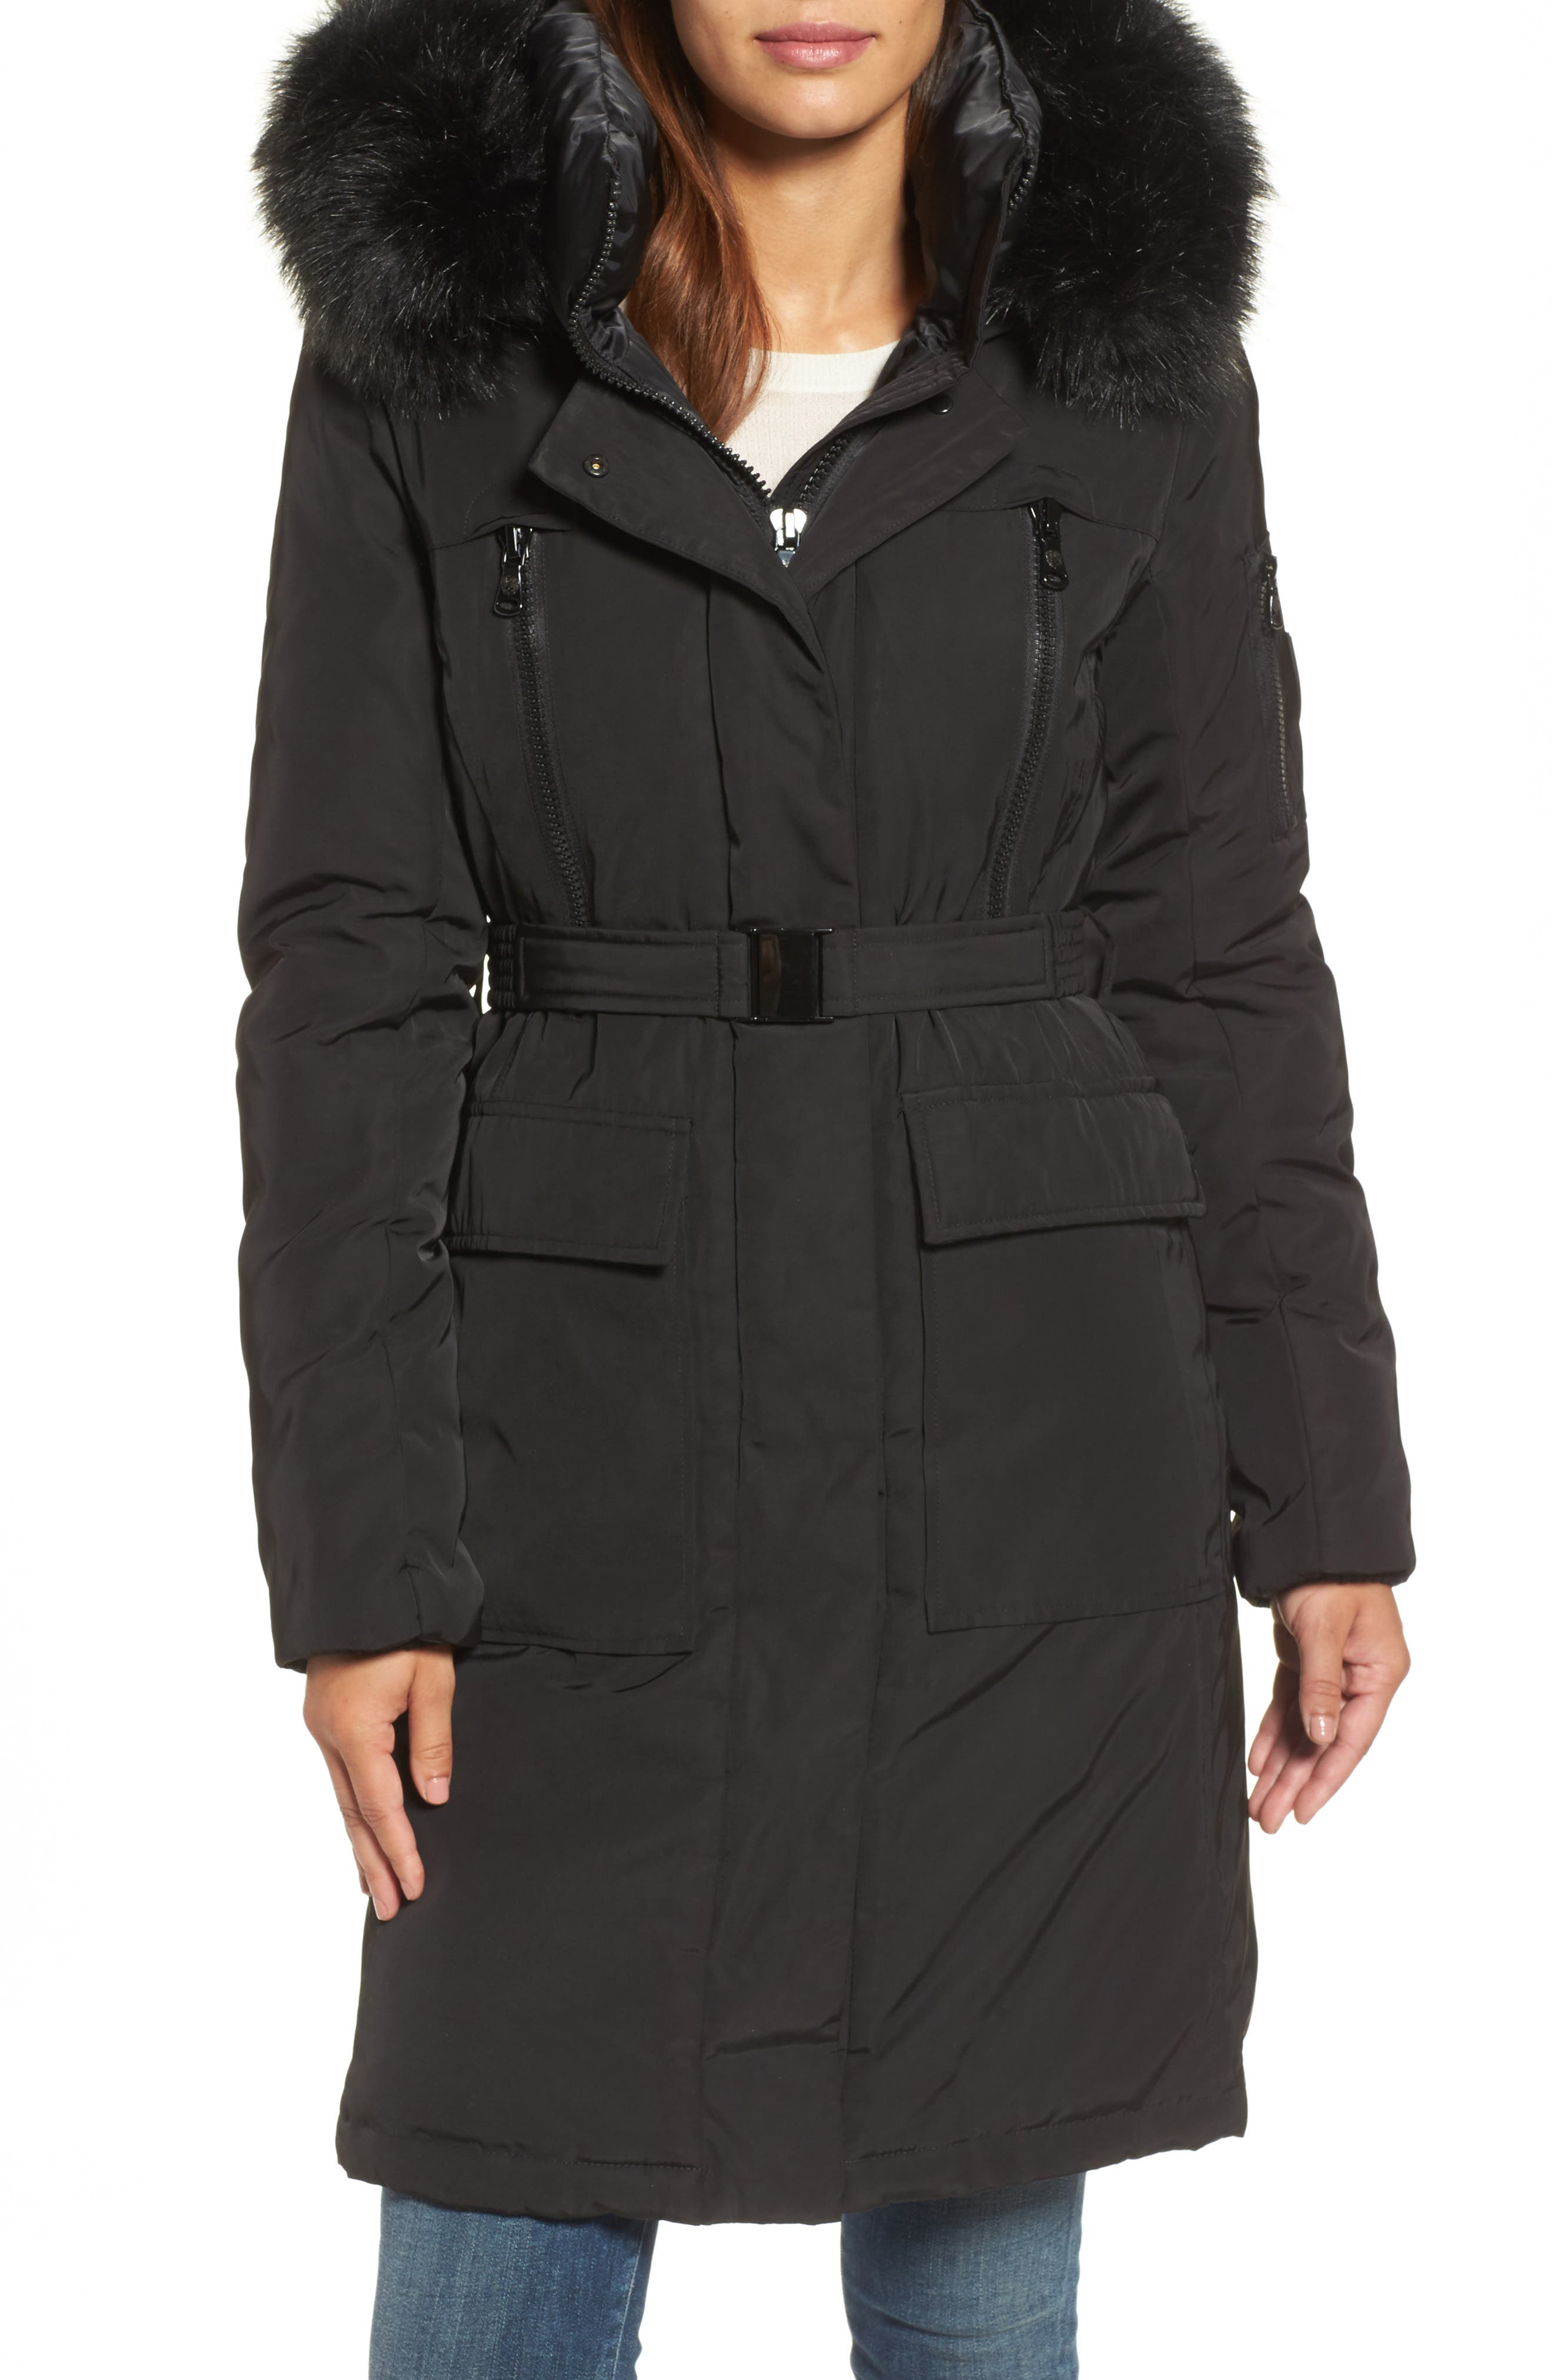 Alternate Image 1 Selected - Vince Camuto Insulated Puffer Jacket